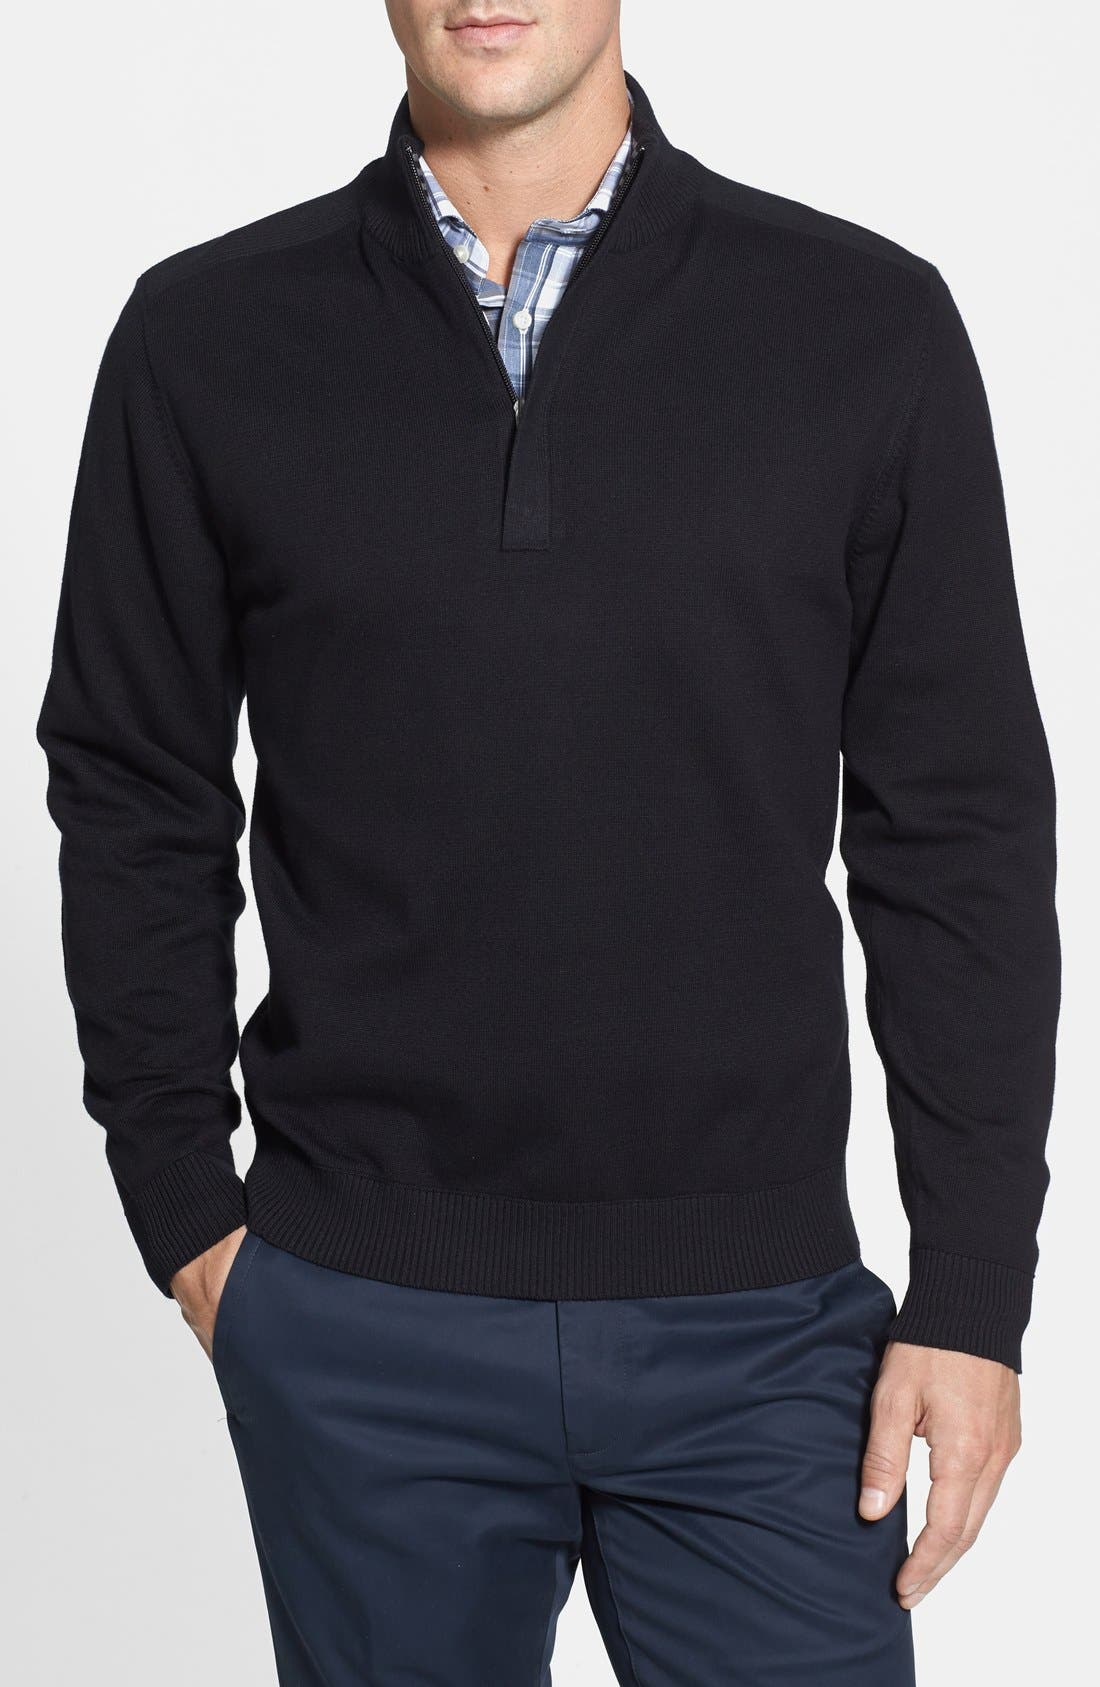 CUTTER & BUCK 'Broadview' Half Zip Sweater